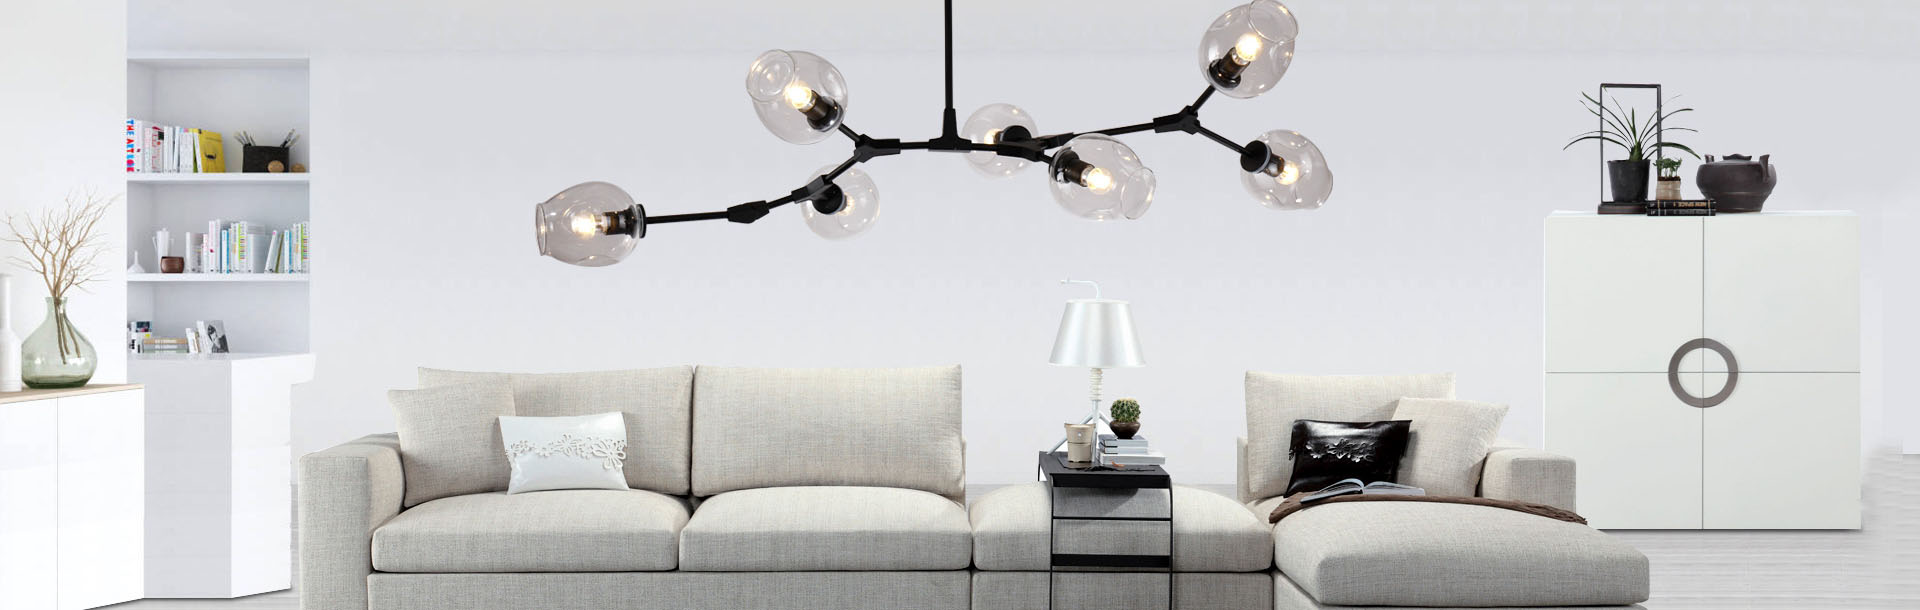 modern lighting supplier